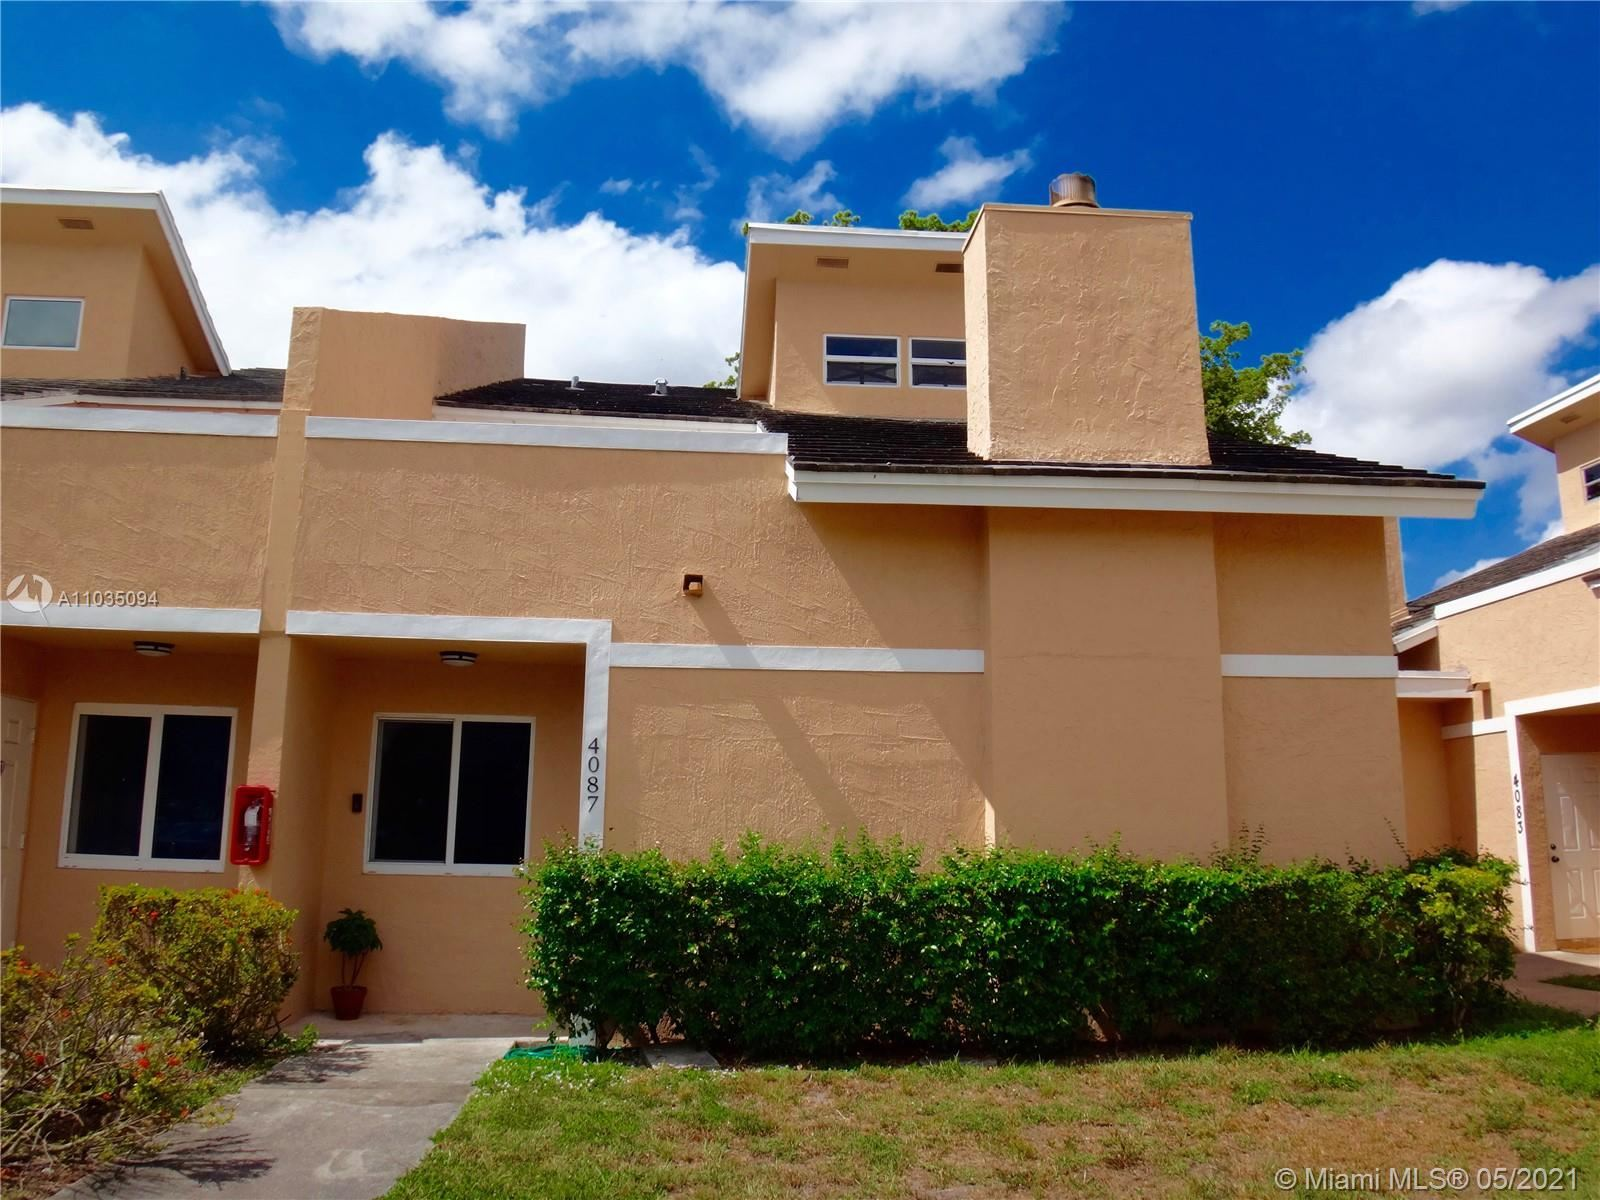 4087 Coral Springs Dr #2, Coral Springs, FL 33065 - #: A11035094